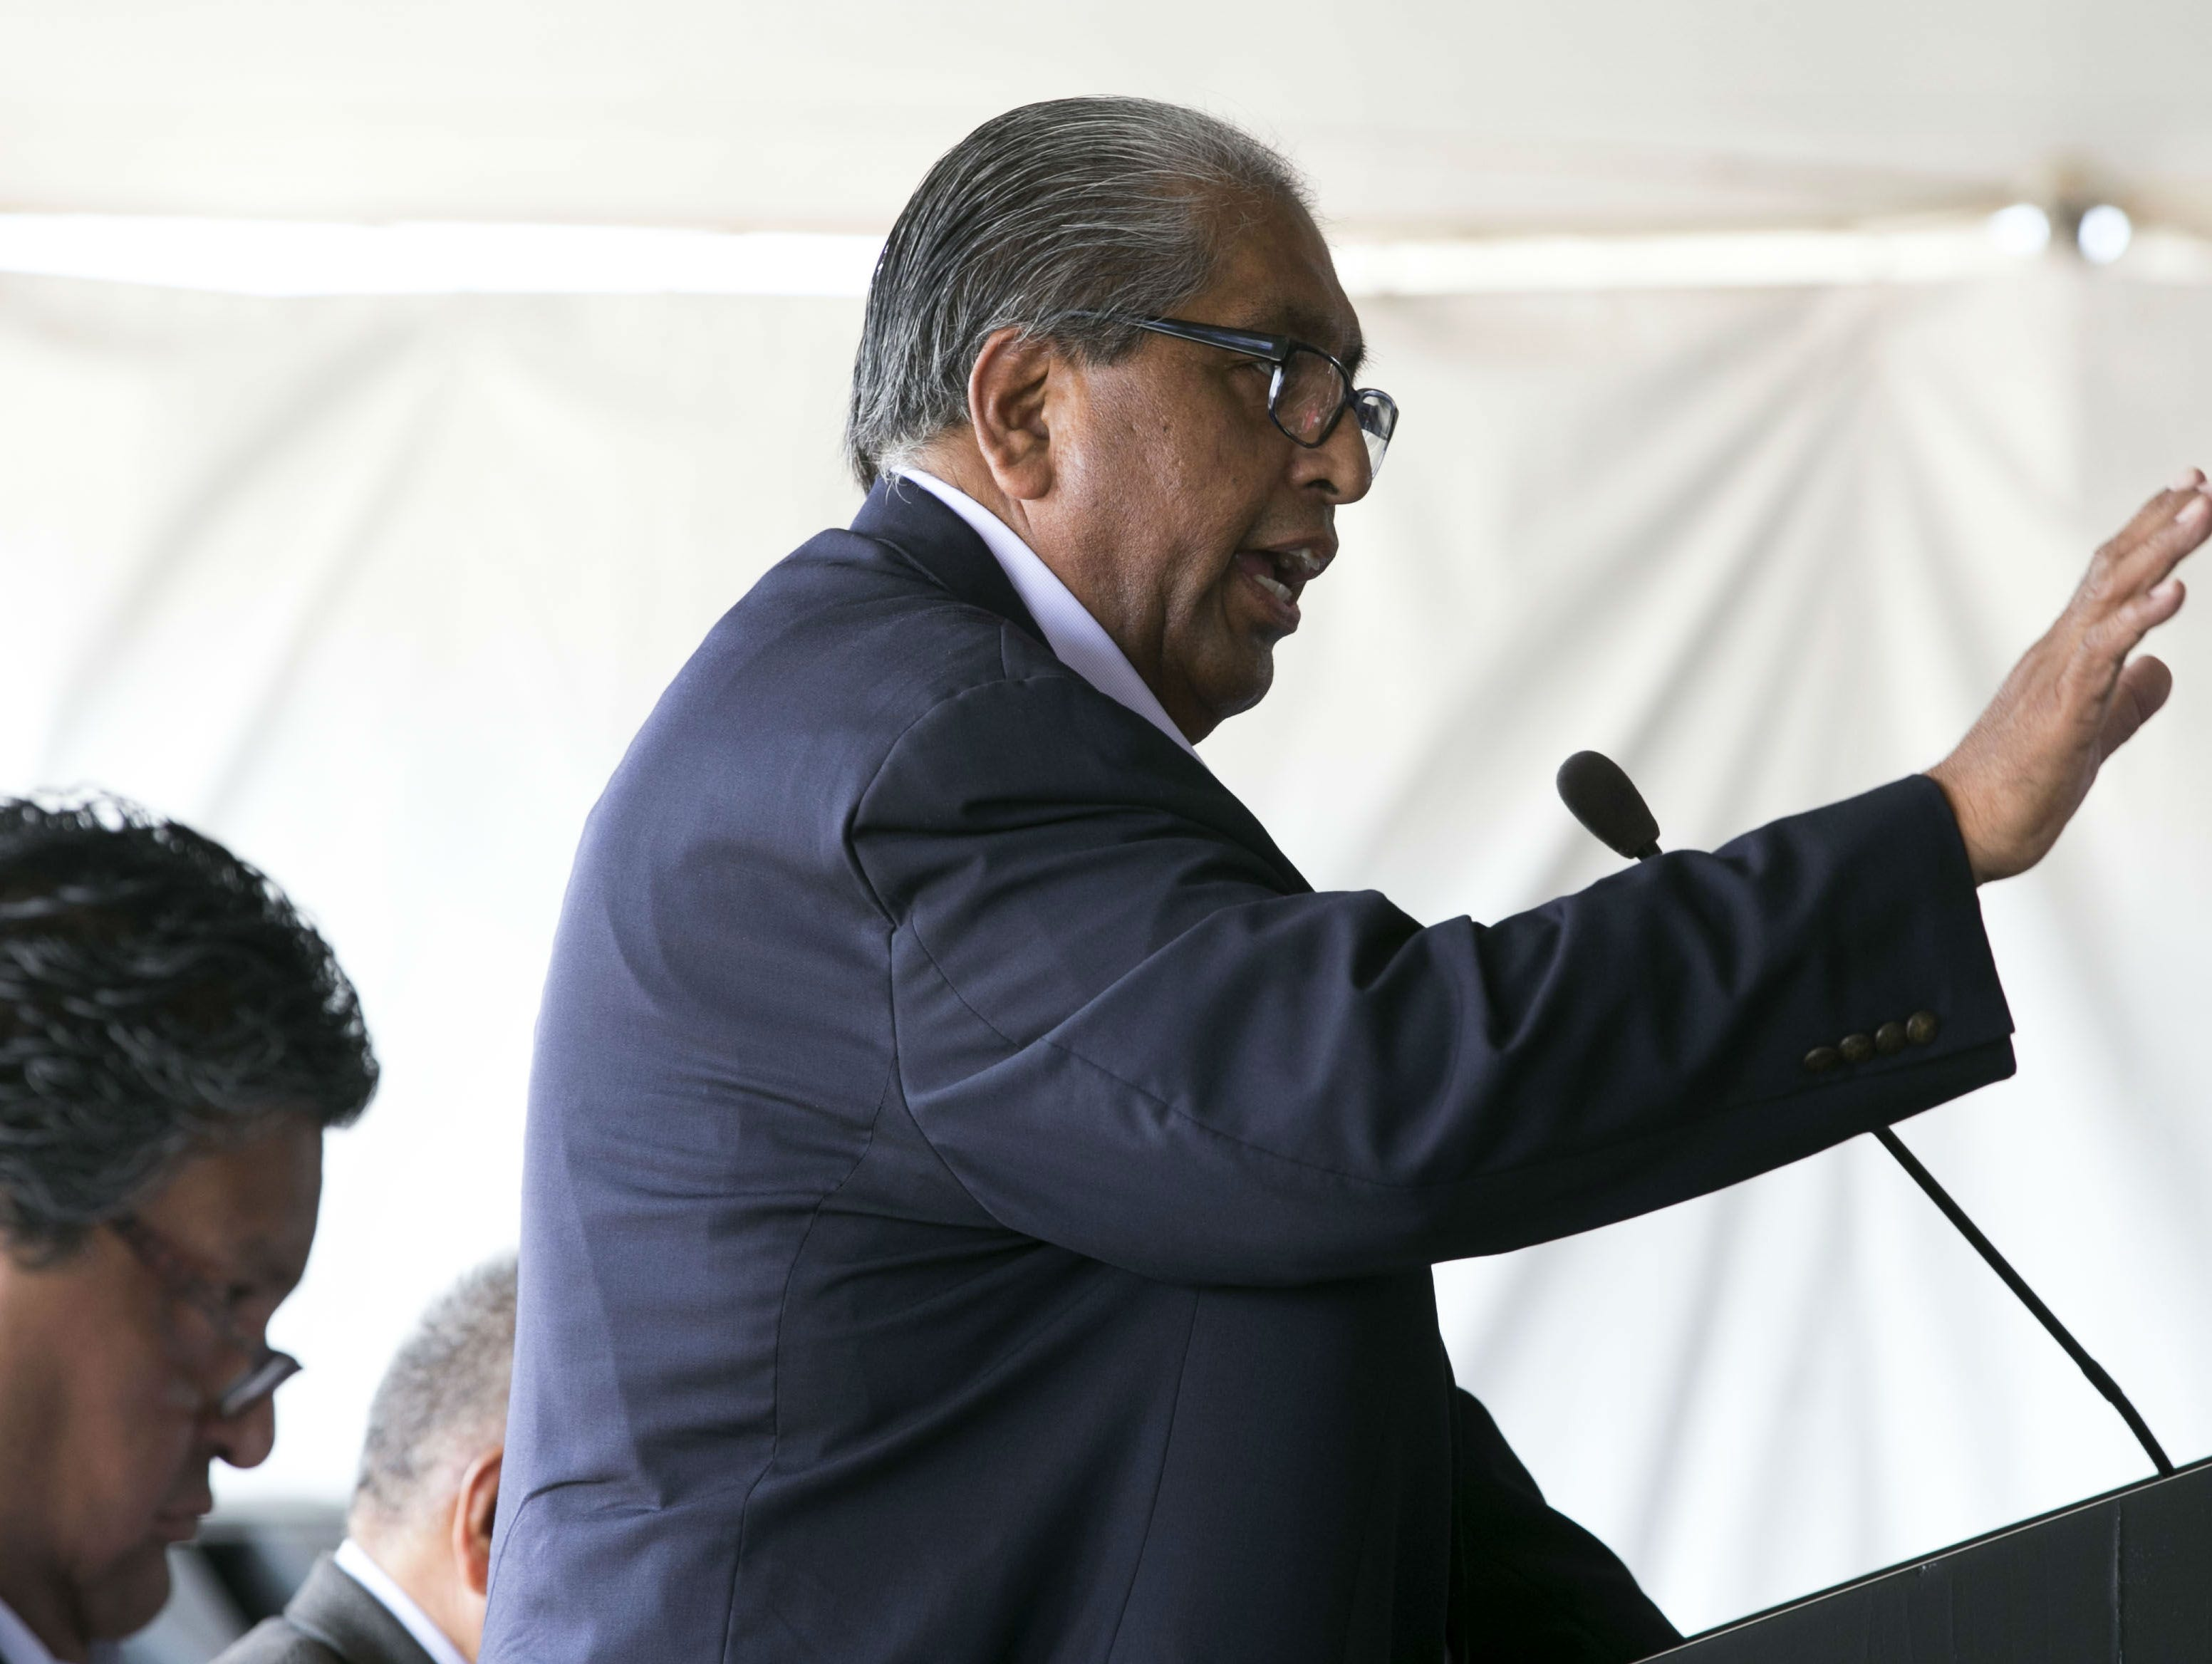 Ned Norris Jr., a former chairman of the Tohono O'odham Nation, speaks during a topping off ceremony to mark a construction milestone in the expansion of the Desert Diamond West Valley Casino in Glendale on Sept. 19, 2018.